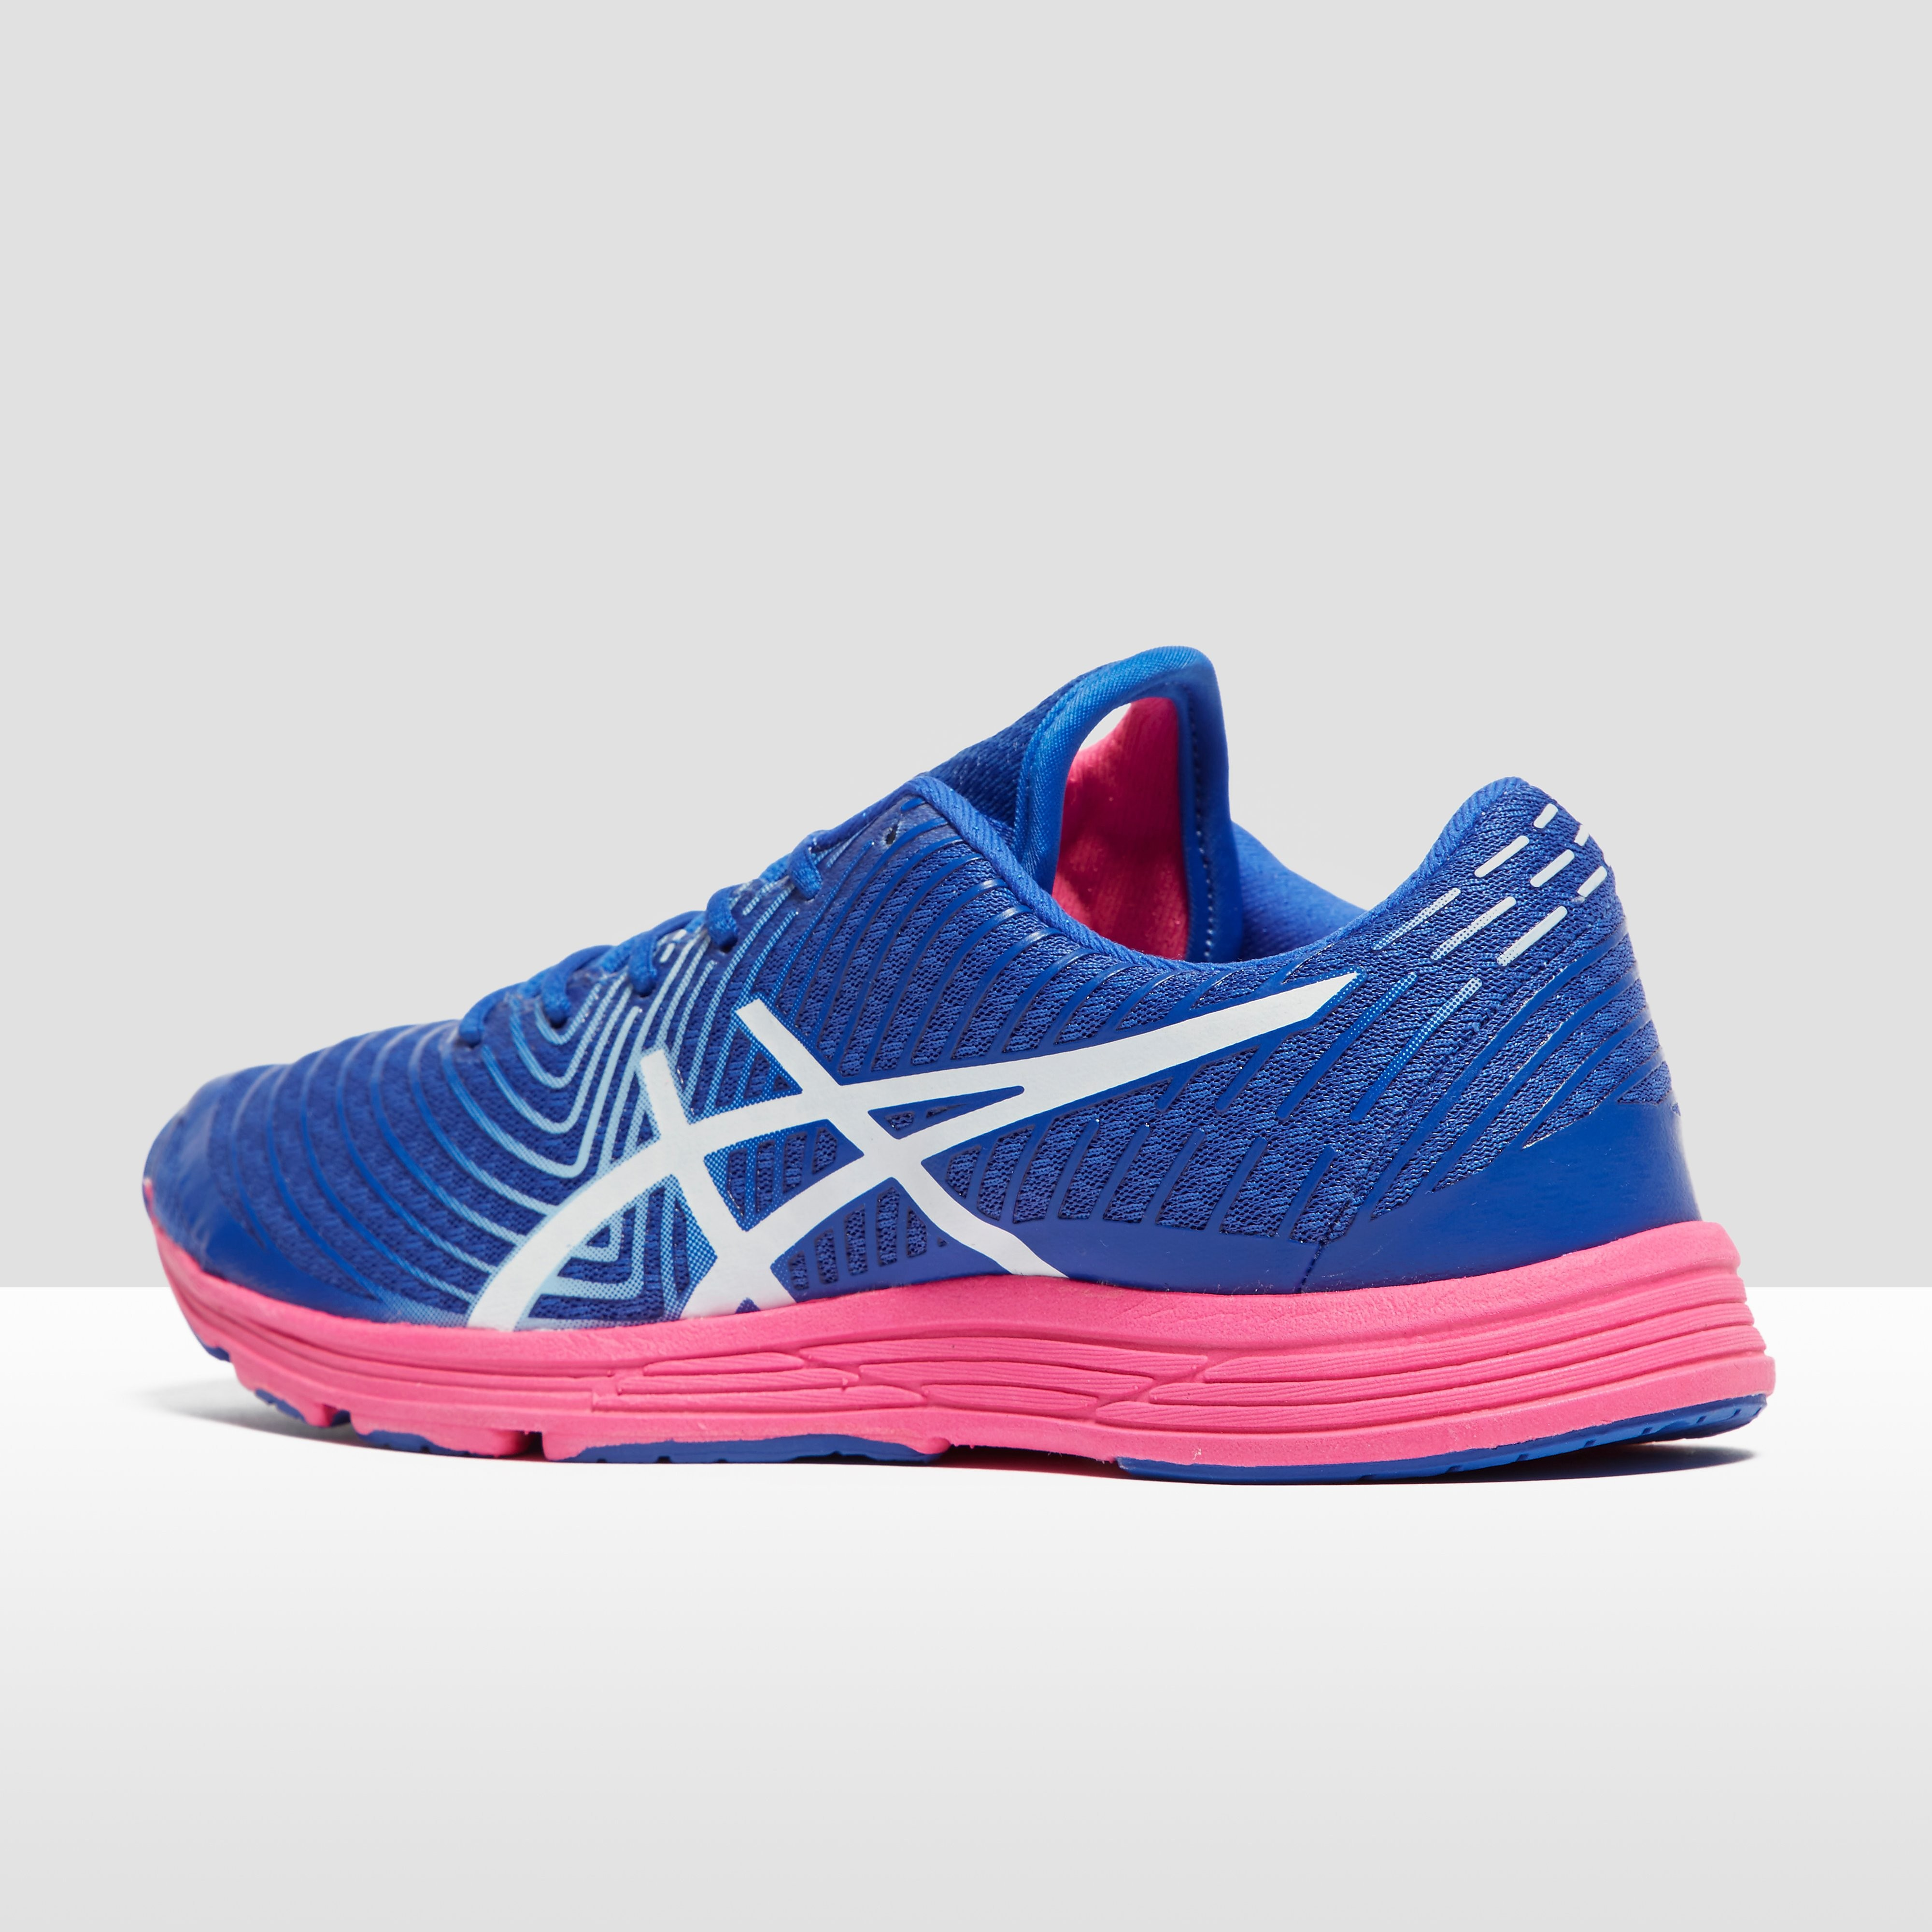 ASICS GEL-Hyper Tri 3 Women's Training Shoes